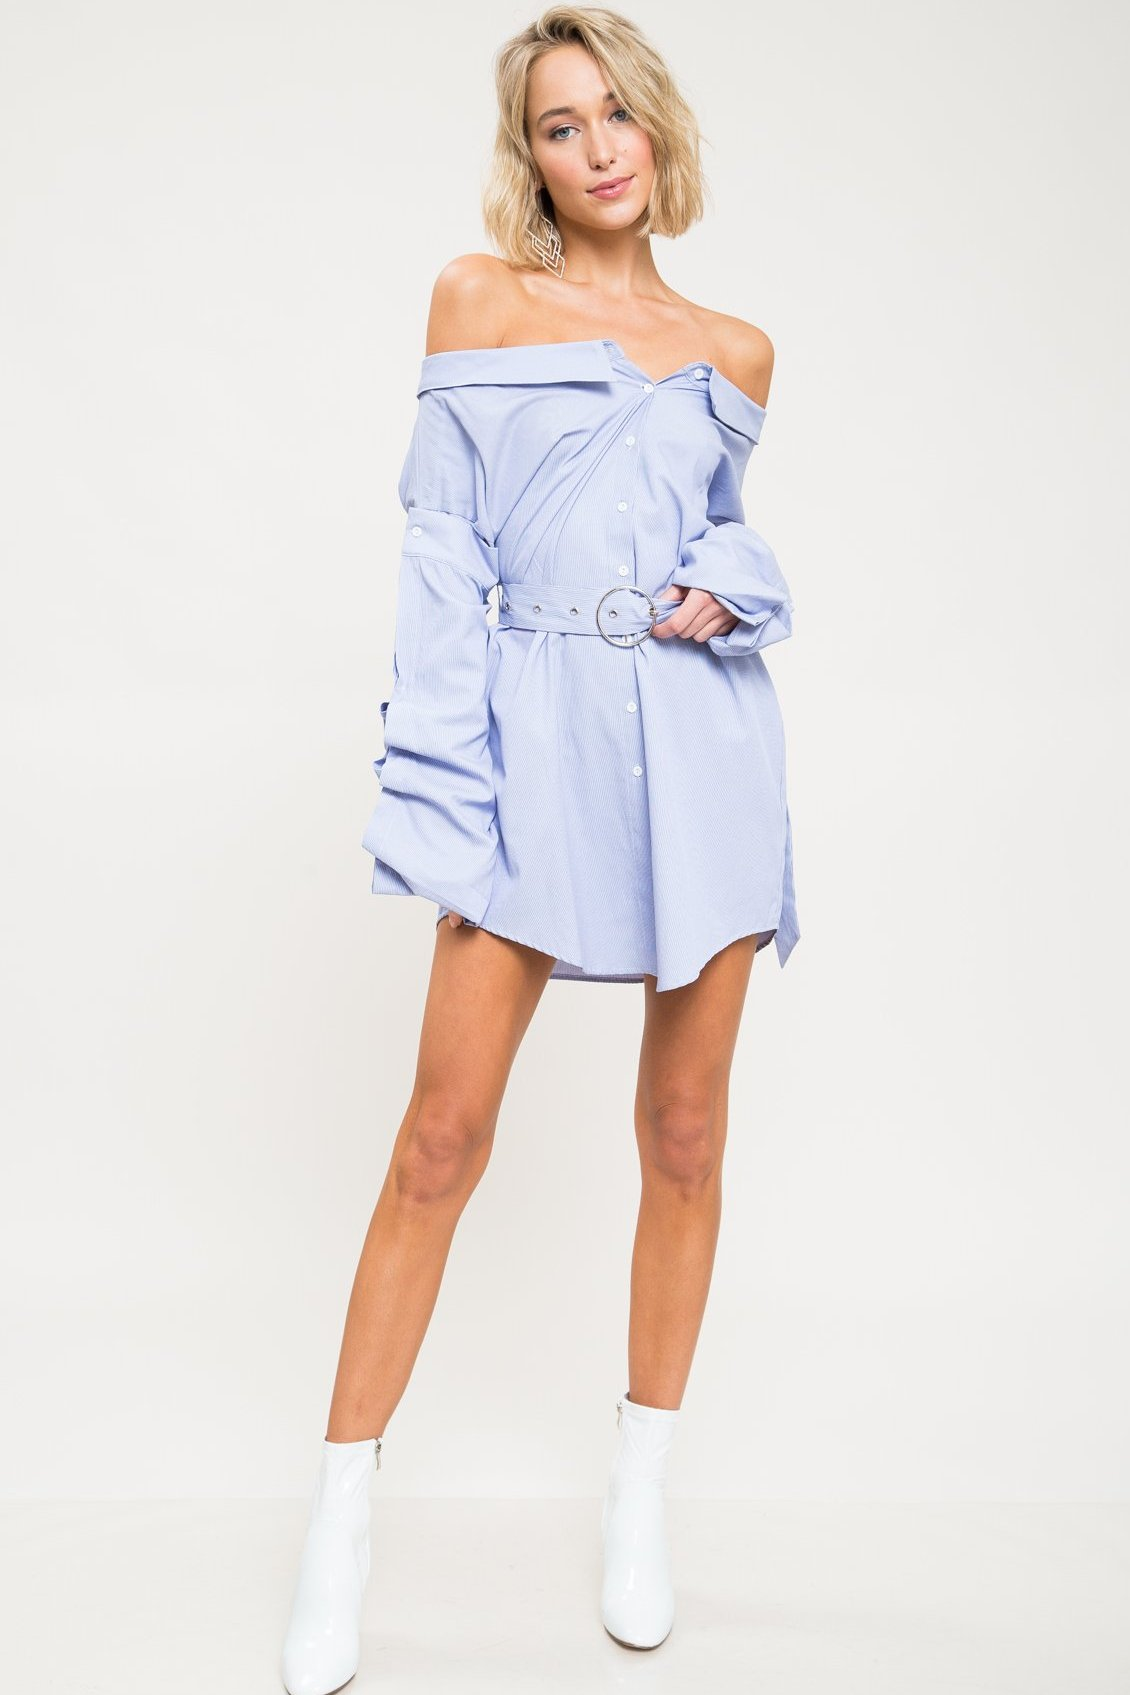 Livvy Off Shoulder Shirt Dress - Geegeebae